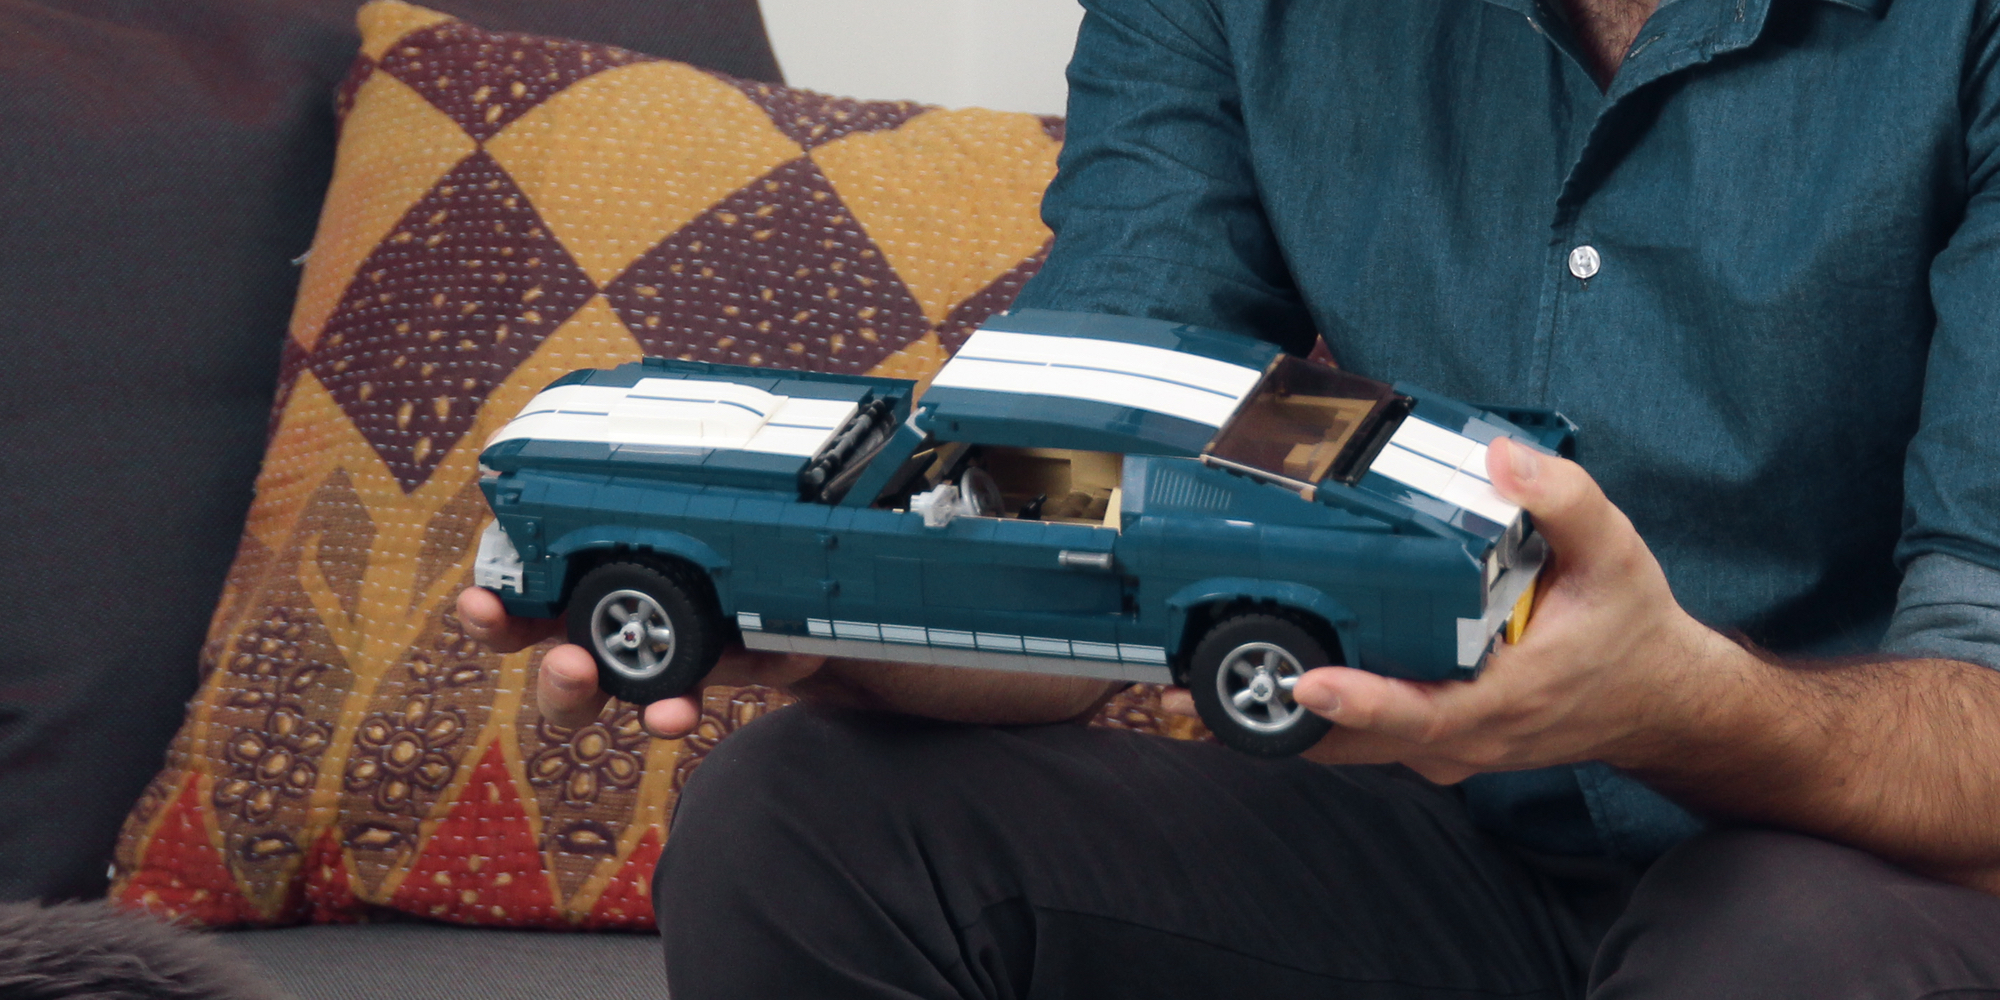 LEGO Ford Mustang Hands-on